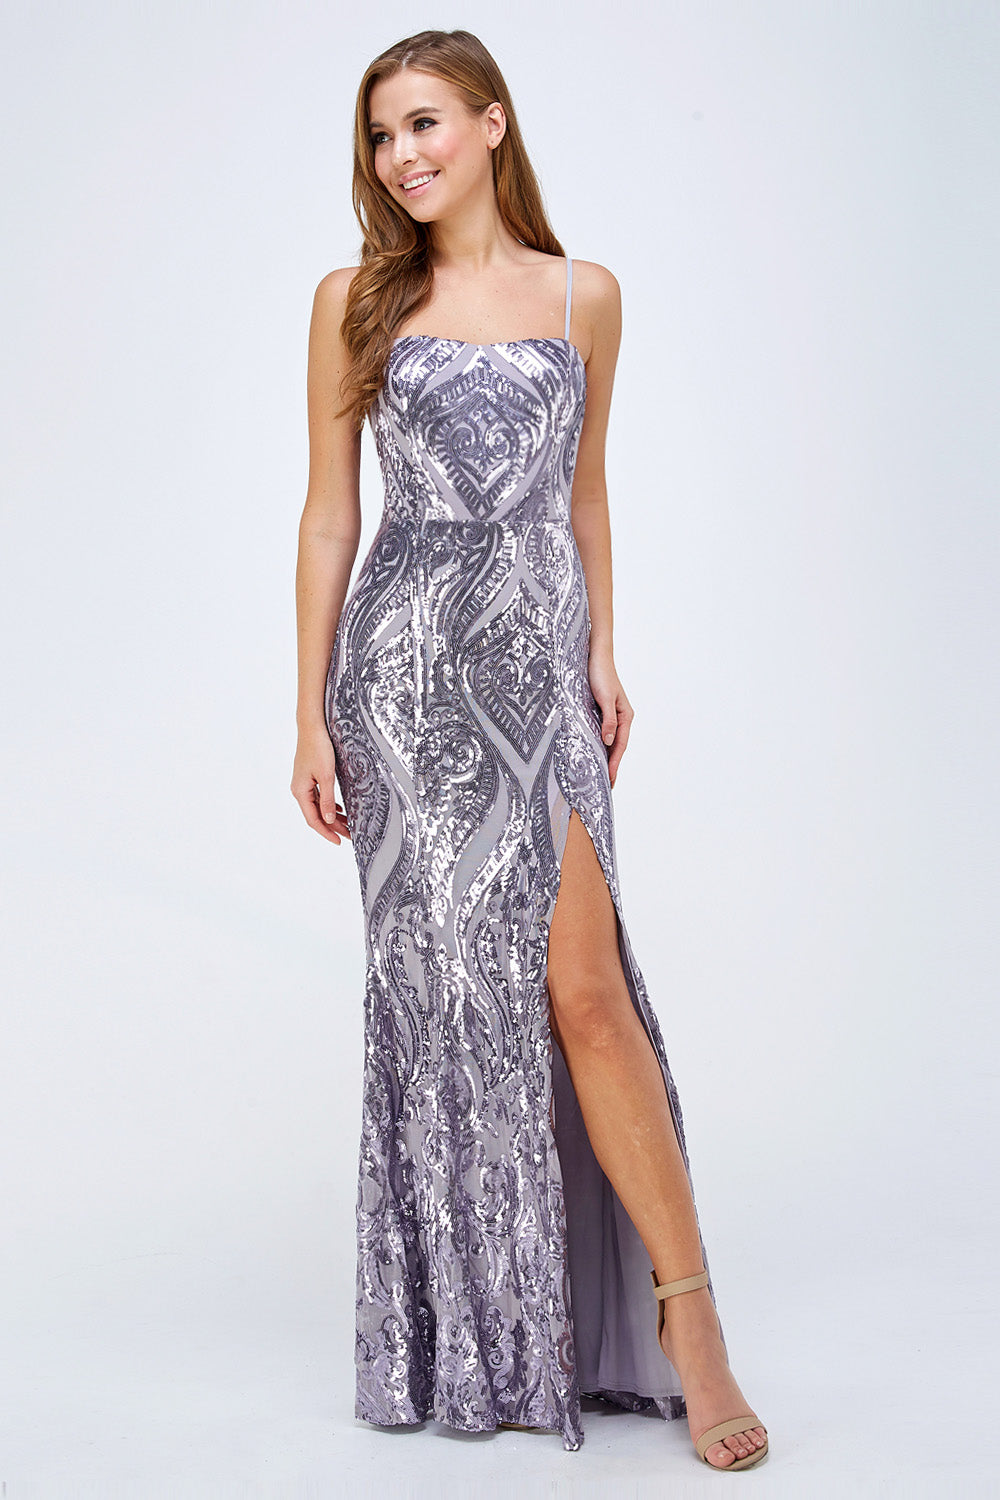 Everlee Prom Gown Straight with Front Slit Prom Dress M-26533-Lavender